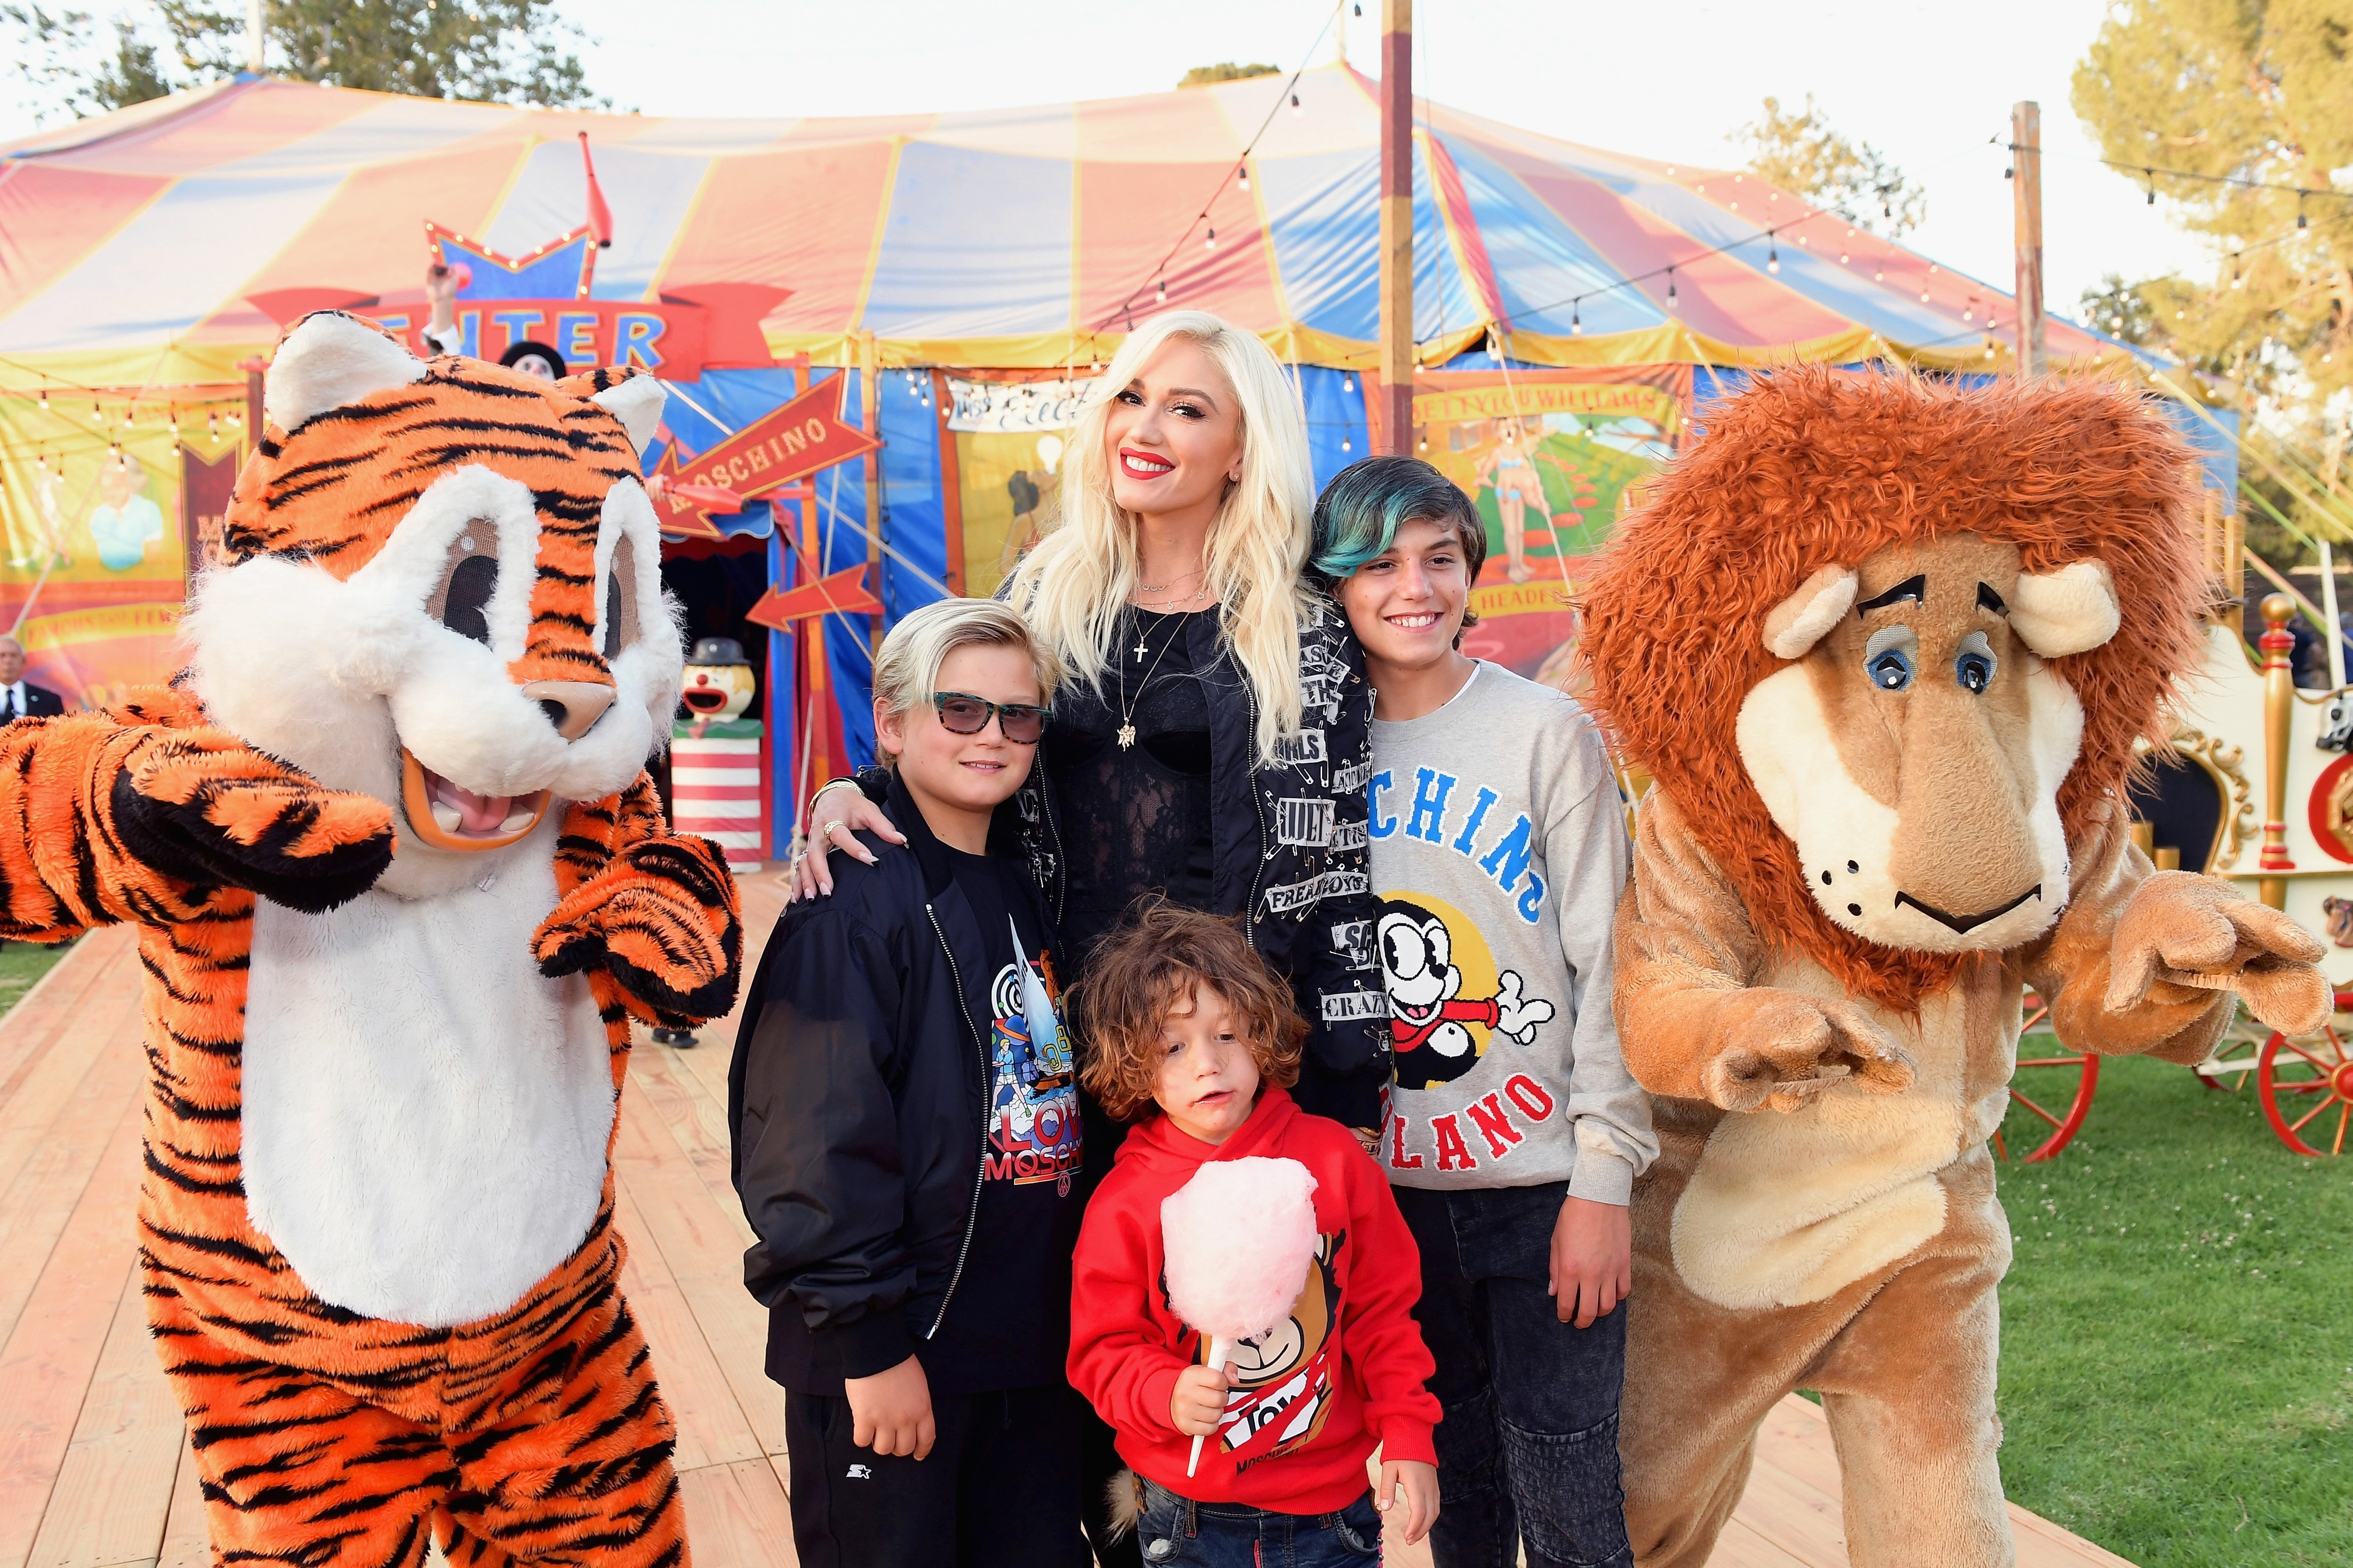 Gwen Stefani with sons Zuma, Apollo, and Kingston Rossdale at the Moschino Spring/Summer 19 Menswear and Women's Resort Collection on June 8, 2018, in Burbank, California | Photo: Matt Winkelmeyer/Getty Images